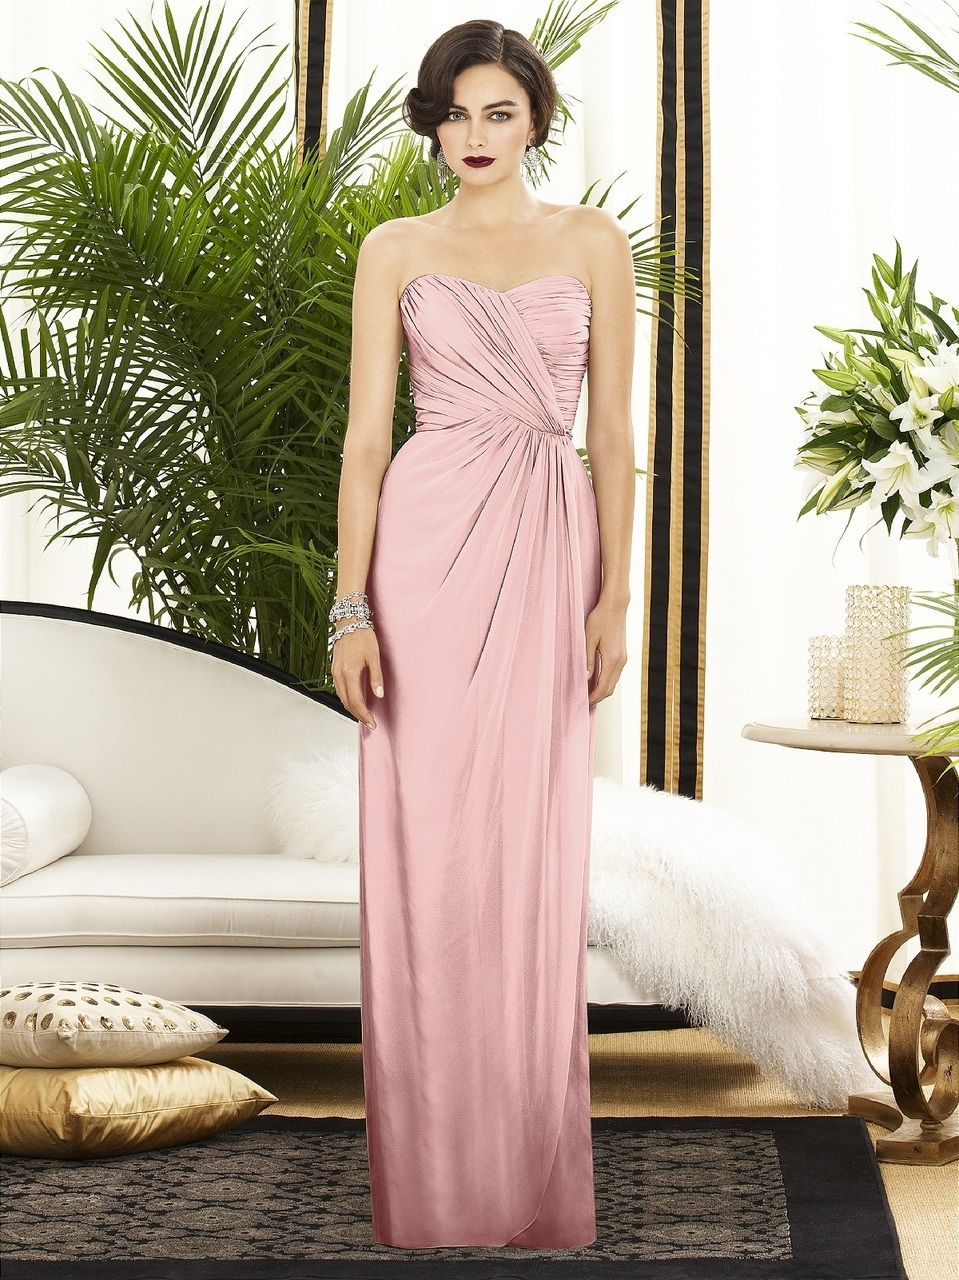 bridals by lori - DESSY QUICK DELIVERY 2882, $270.00 (http://shop ...